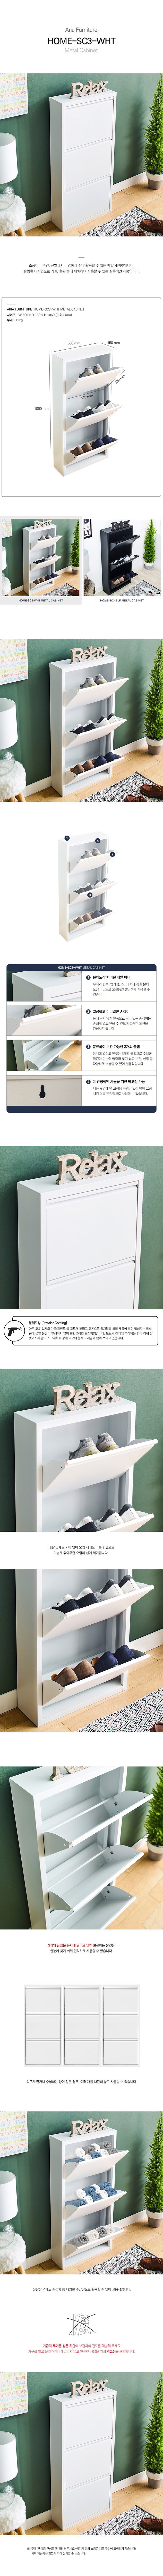 Home-SC-White-shoe-cabinet_181203.jpg